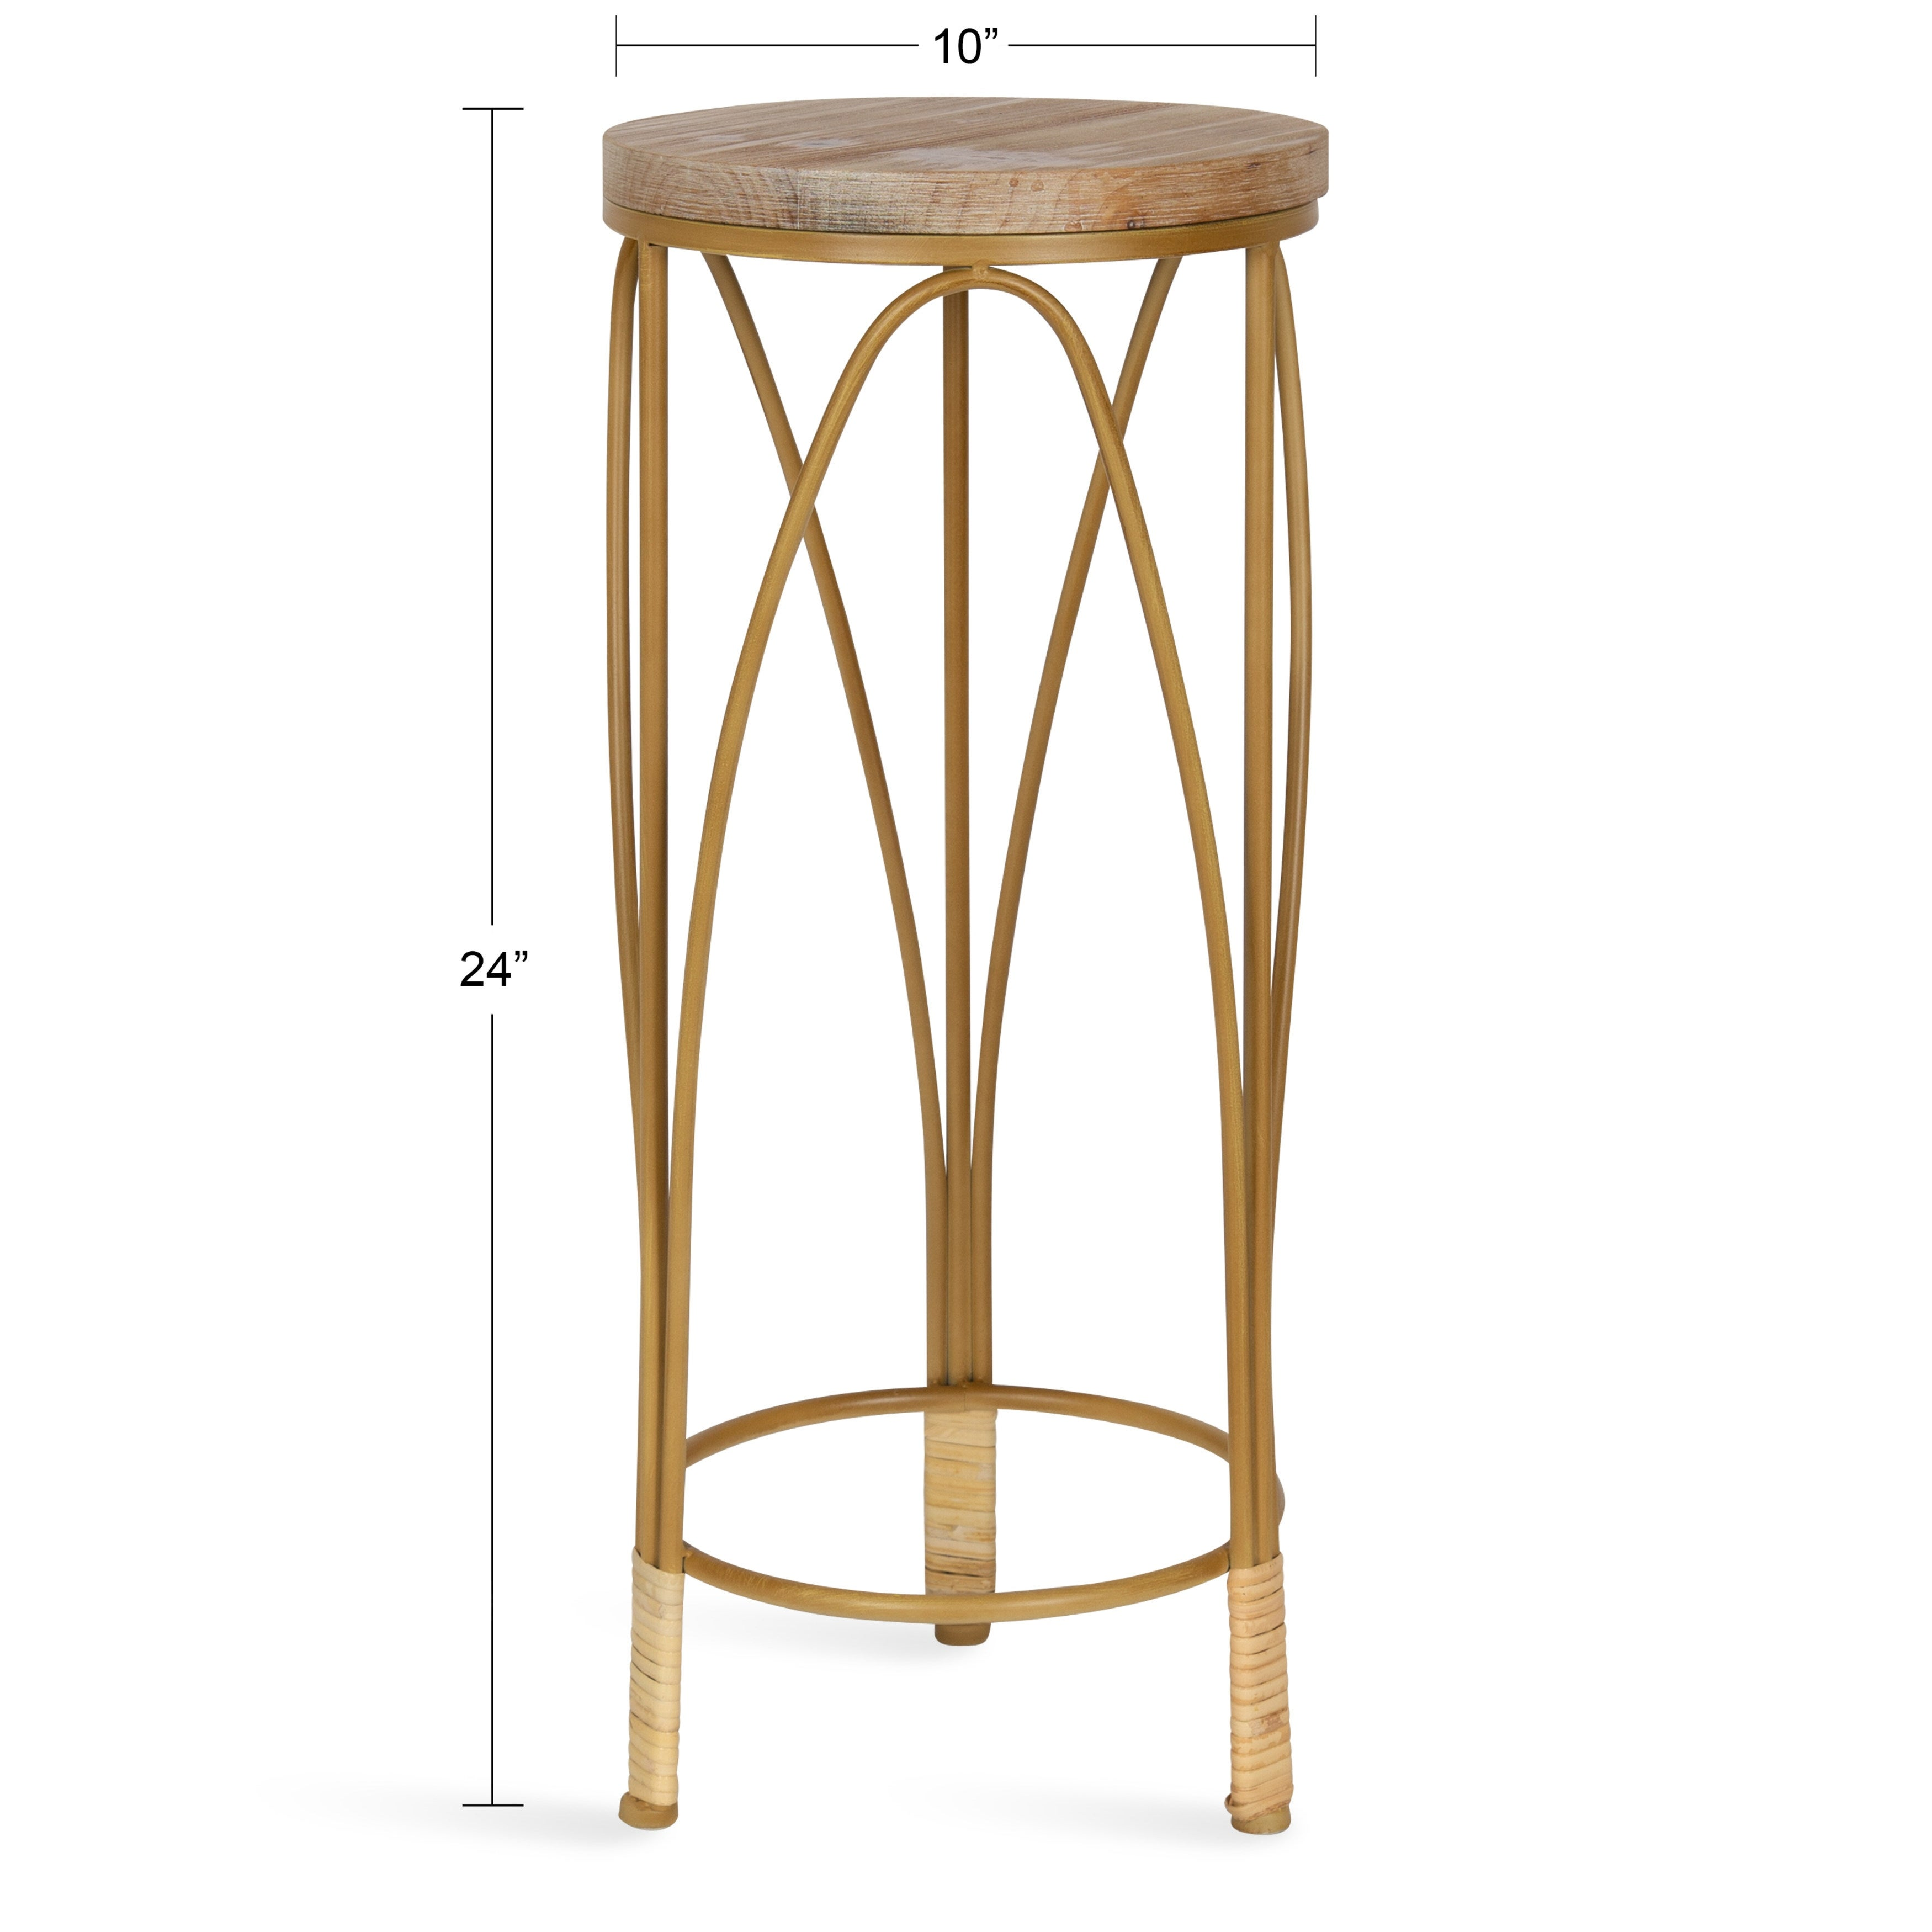 Kate And Laurel Abella Round End Table 10x10x24 Overstock 32086584